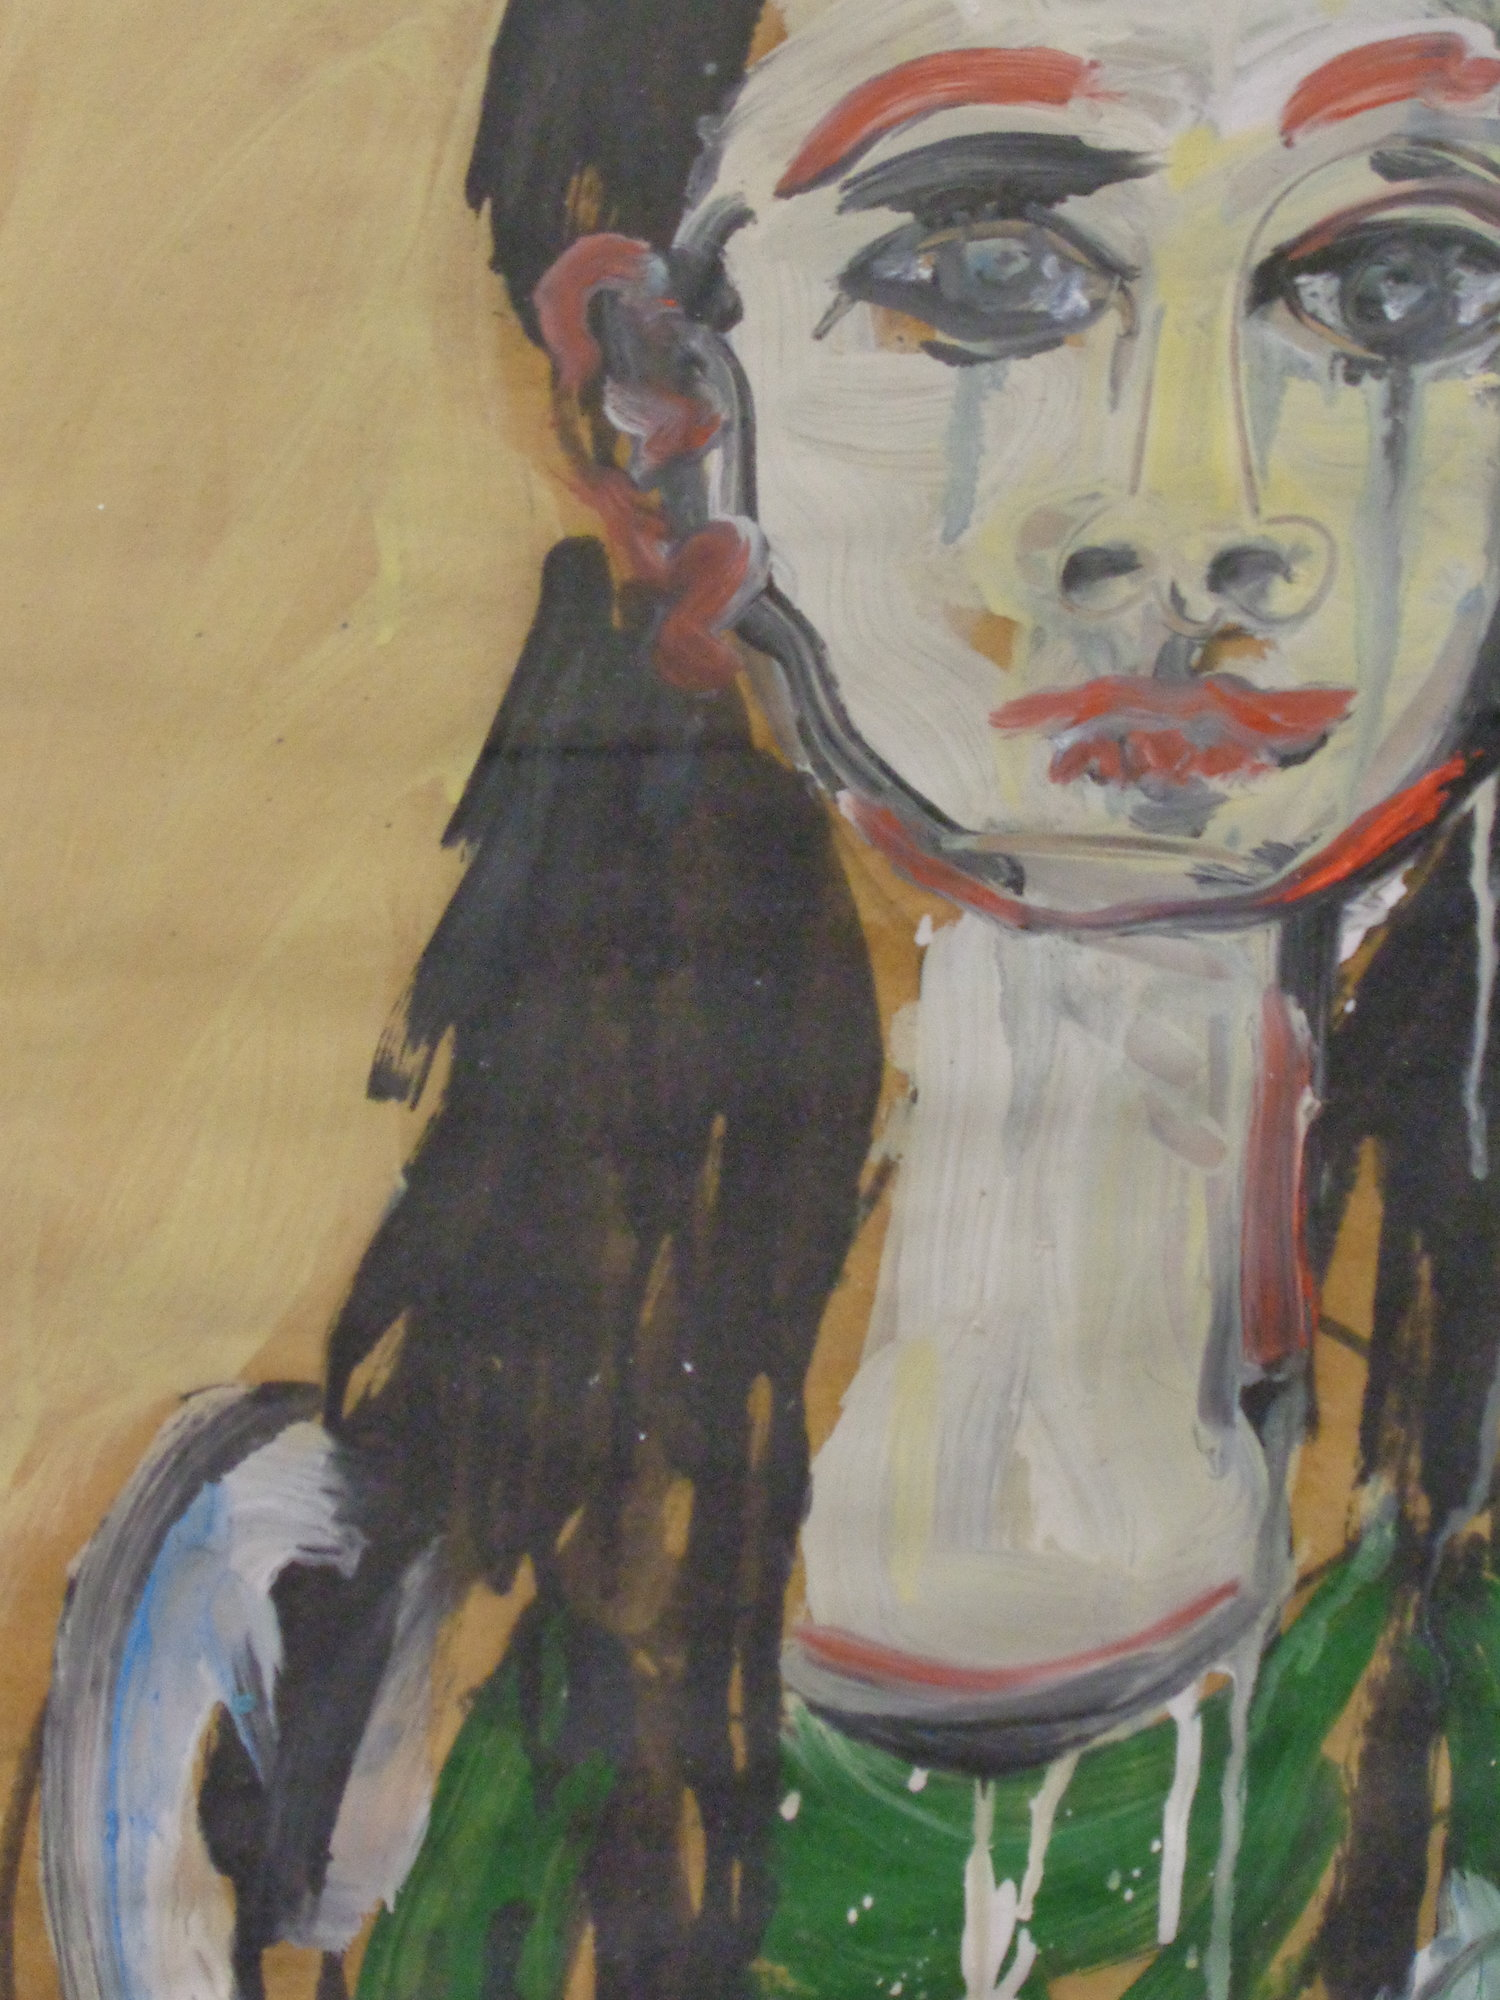 Sonoko Glaring - Oil on paper 2012